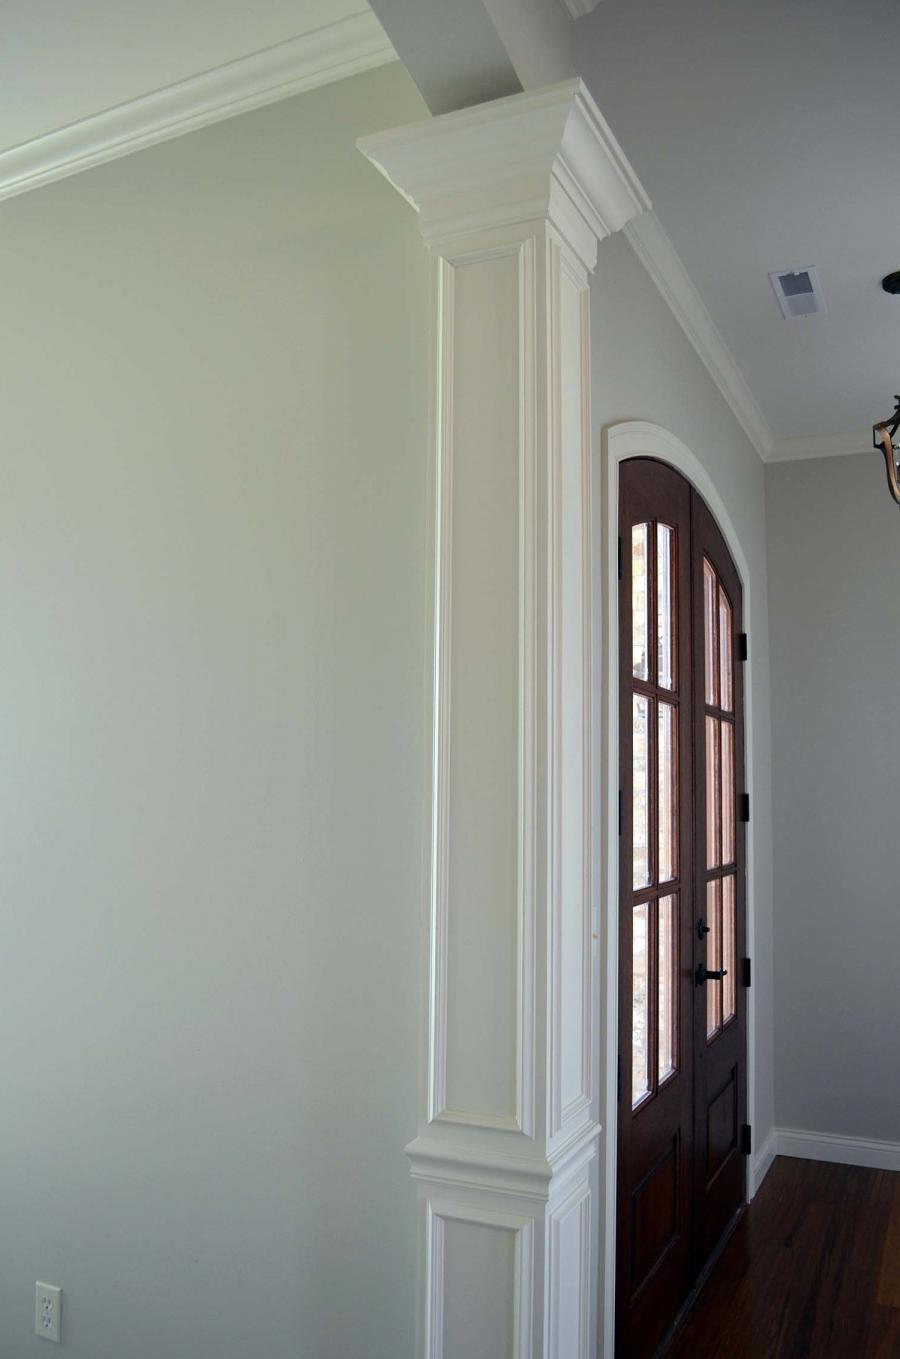 Photos of interior columns for Columns in houses interior